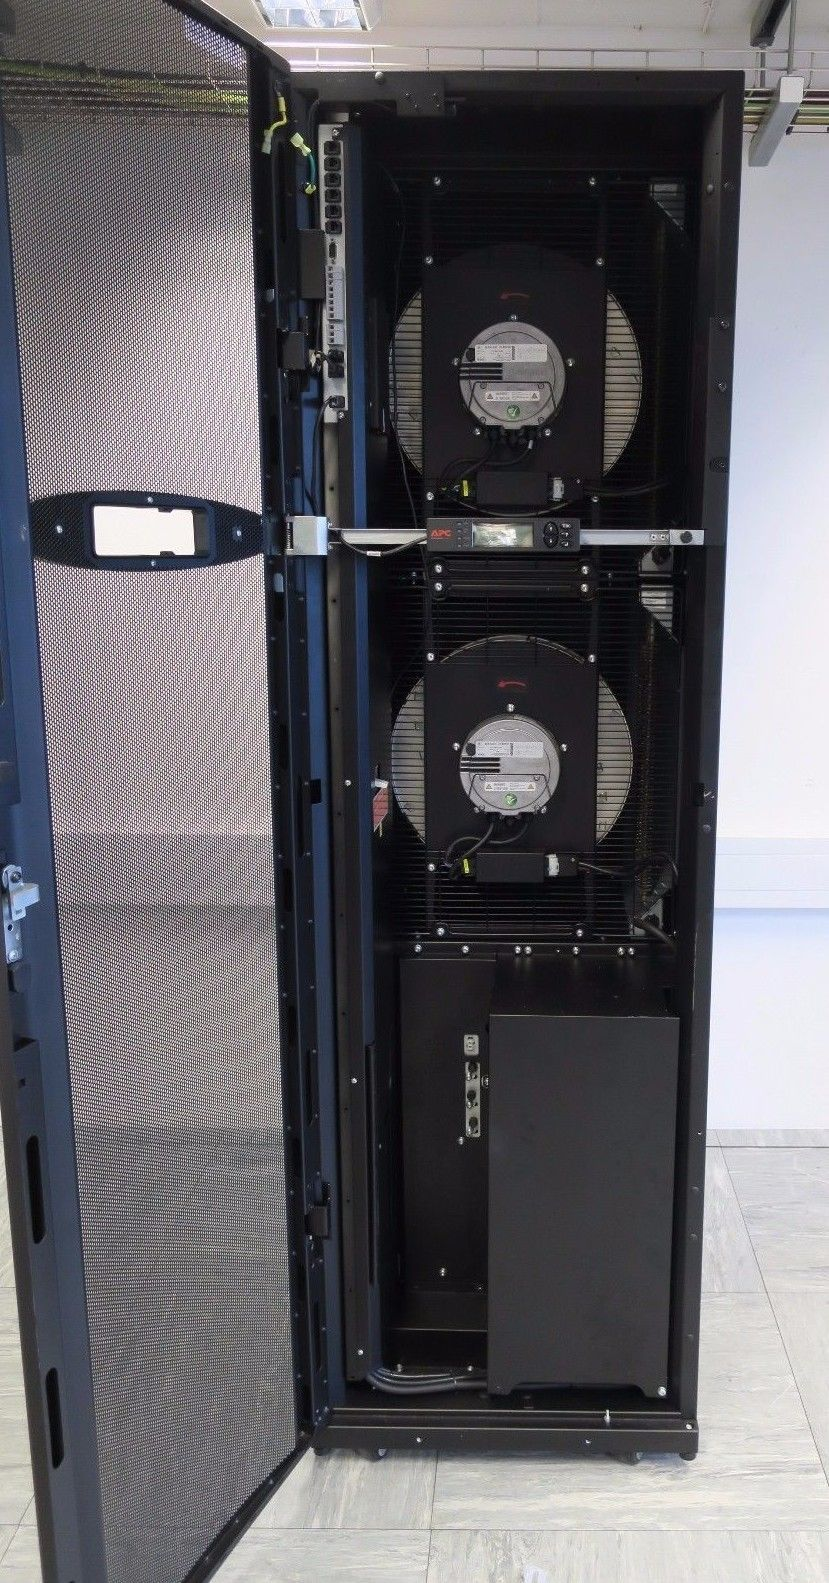 Apc Acrp102 Inrow Dx Rp 600mm Rack Air Conditioning